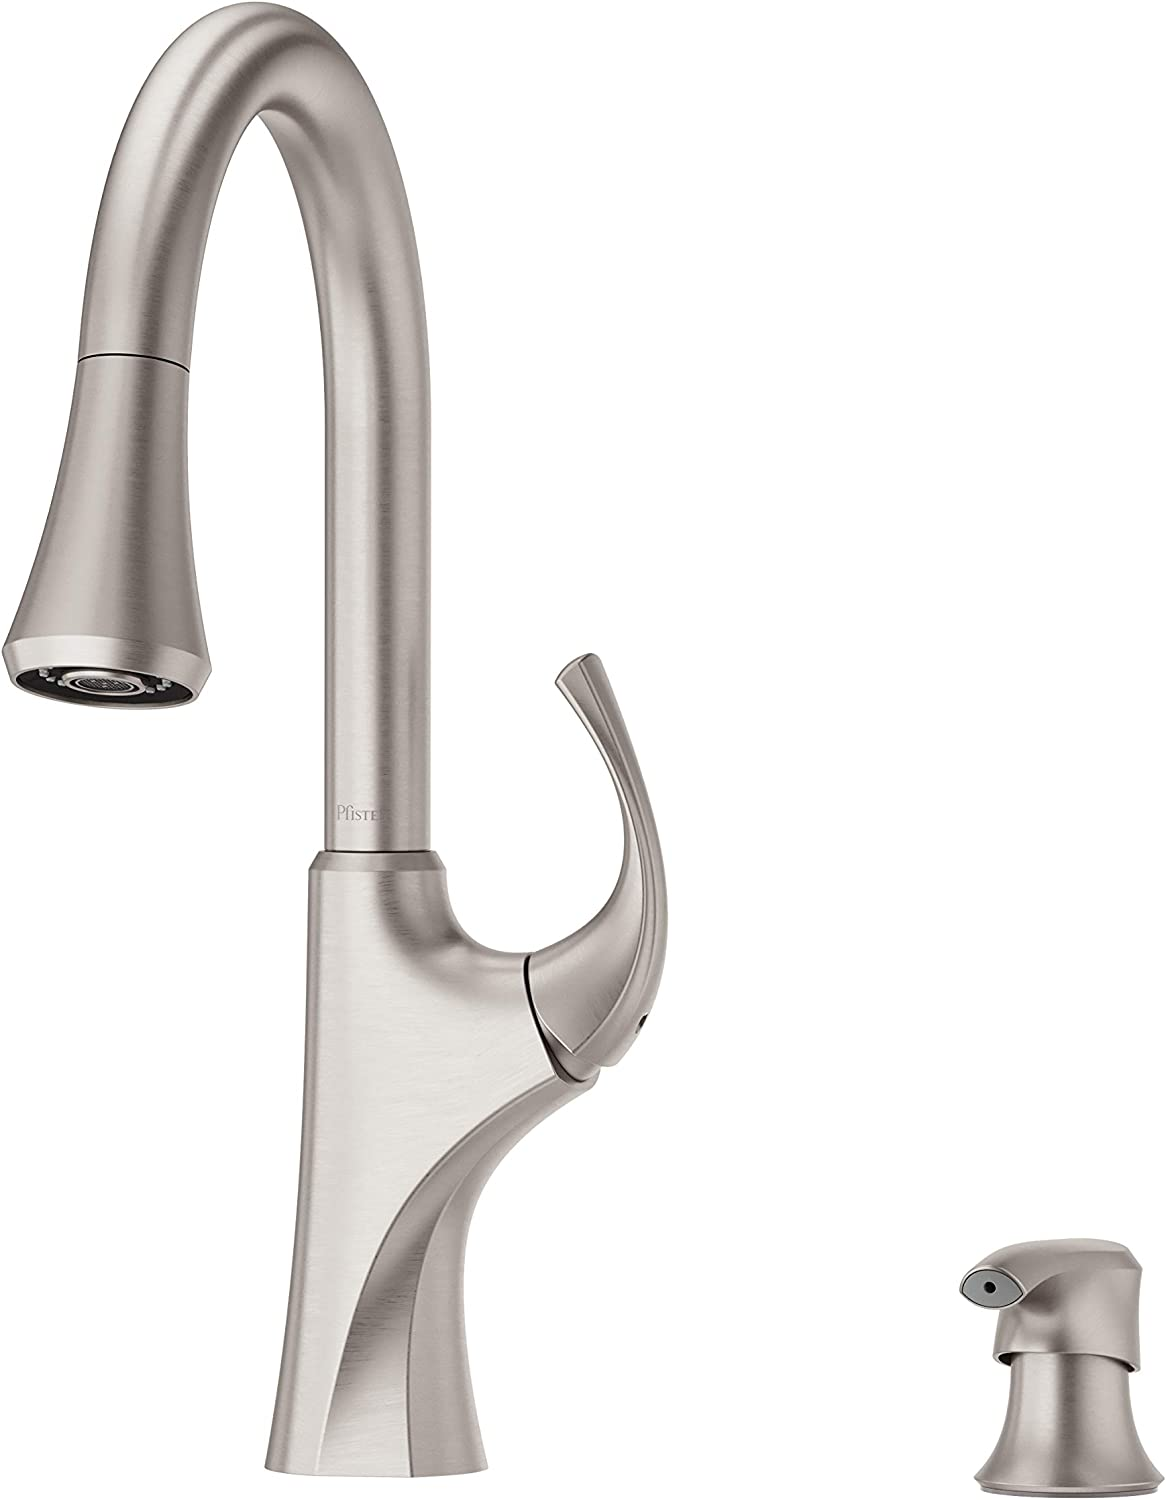 Pfister F 529 7mrgs Miri 1 Handle Easy Install Pull Down Kitchen Faucet With Soap Dispenser Spot Defense Stainless Steel Amazon Com